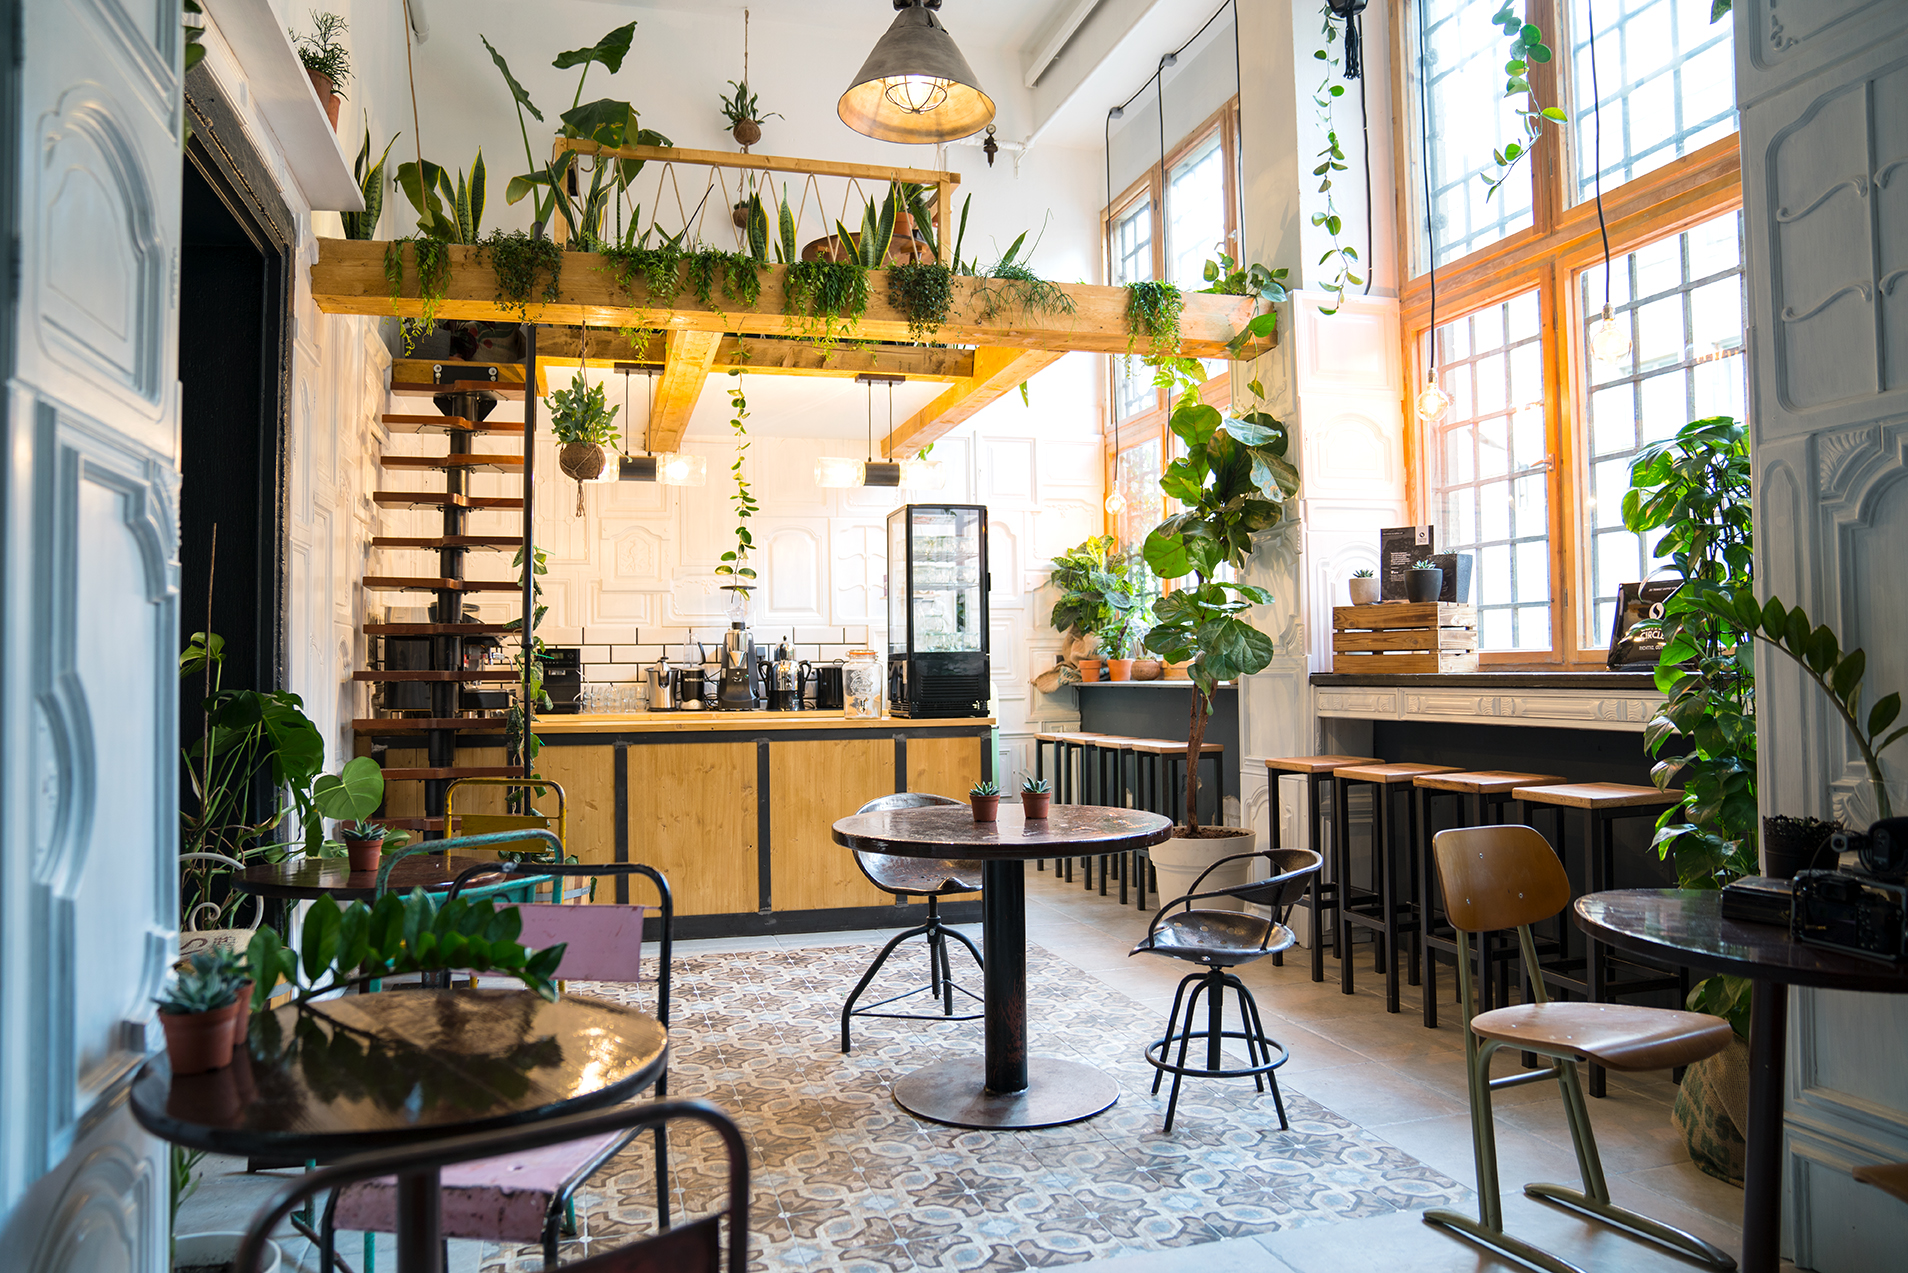 10 Amazing Cafes for Breakfast, Brunch & Coffee in Berlin